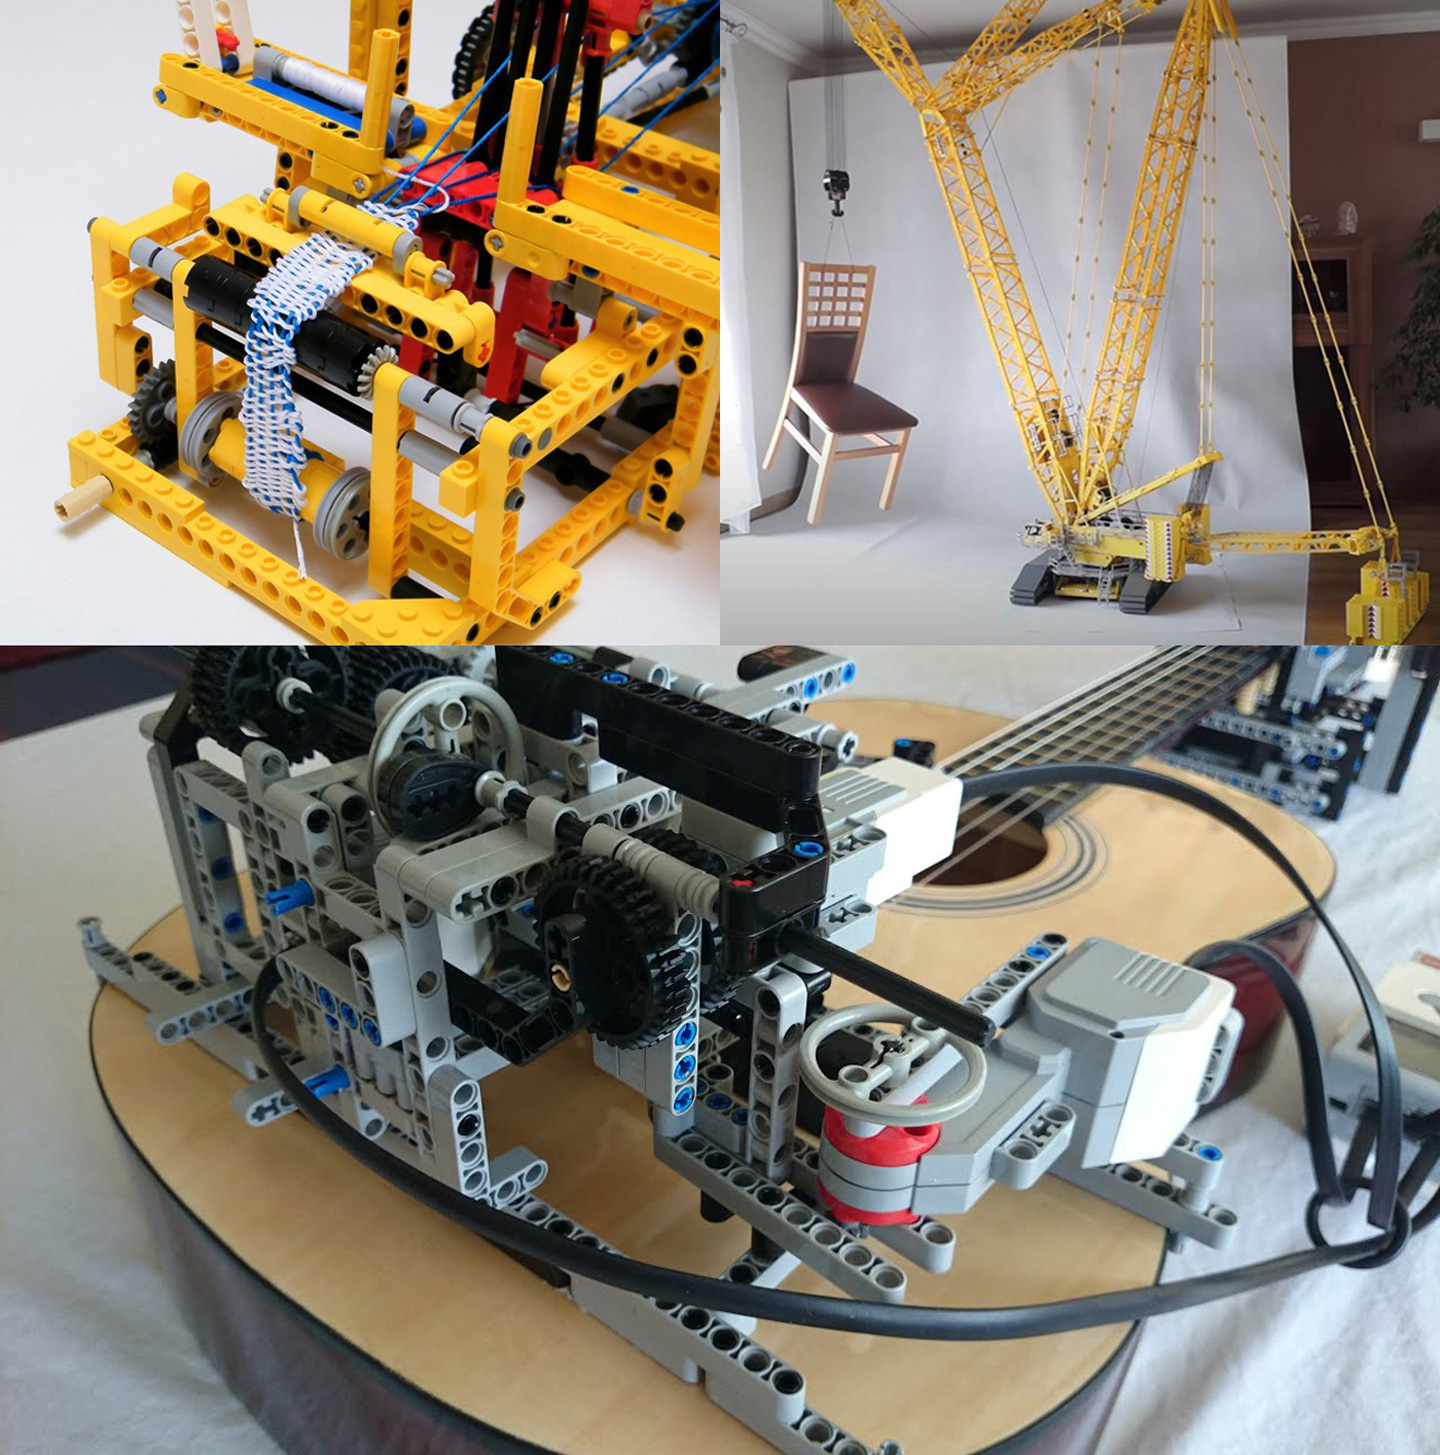 Some of the practical uses of LEGO Technic system include: (a) mechanical loom (upper left, source: N. Lespour); (b) crawler crane for lifting (upper right, source: D. Szmandra), and (c) guitar playing (bottom, source: TECHNICally Possible)